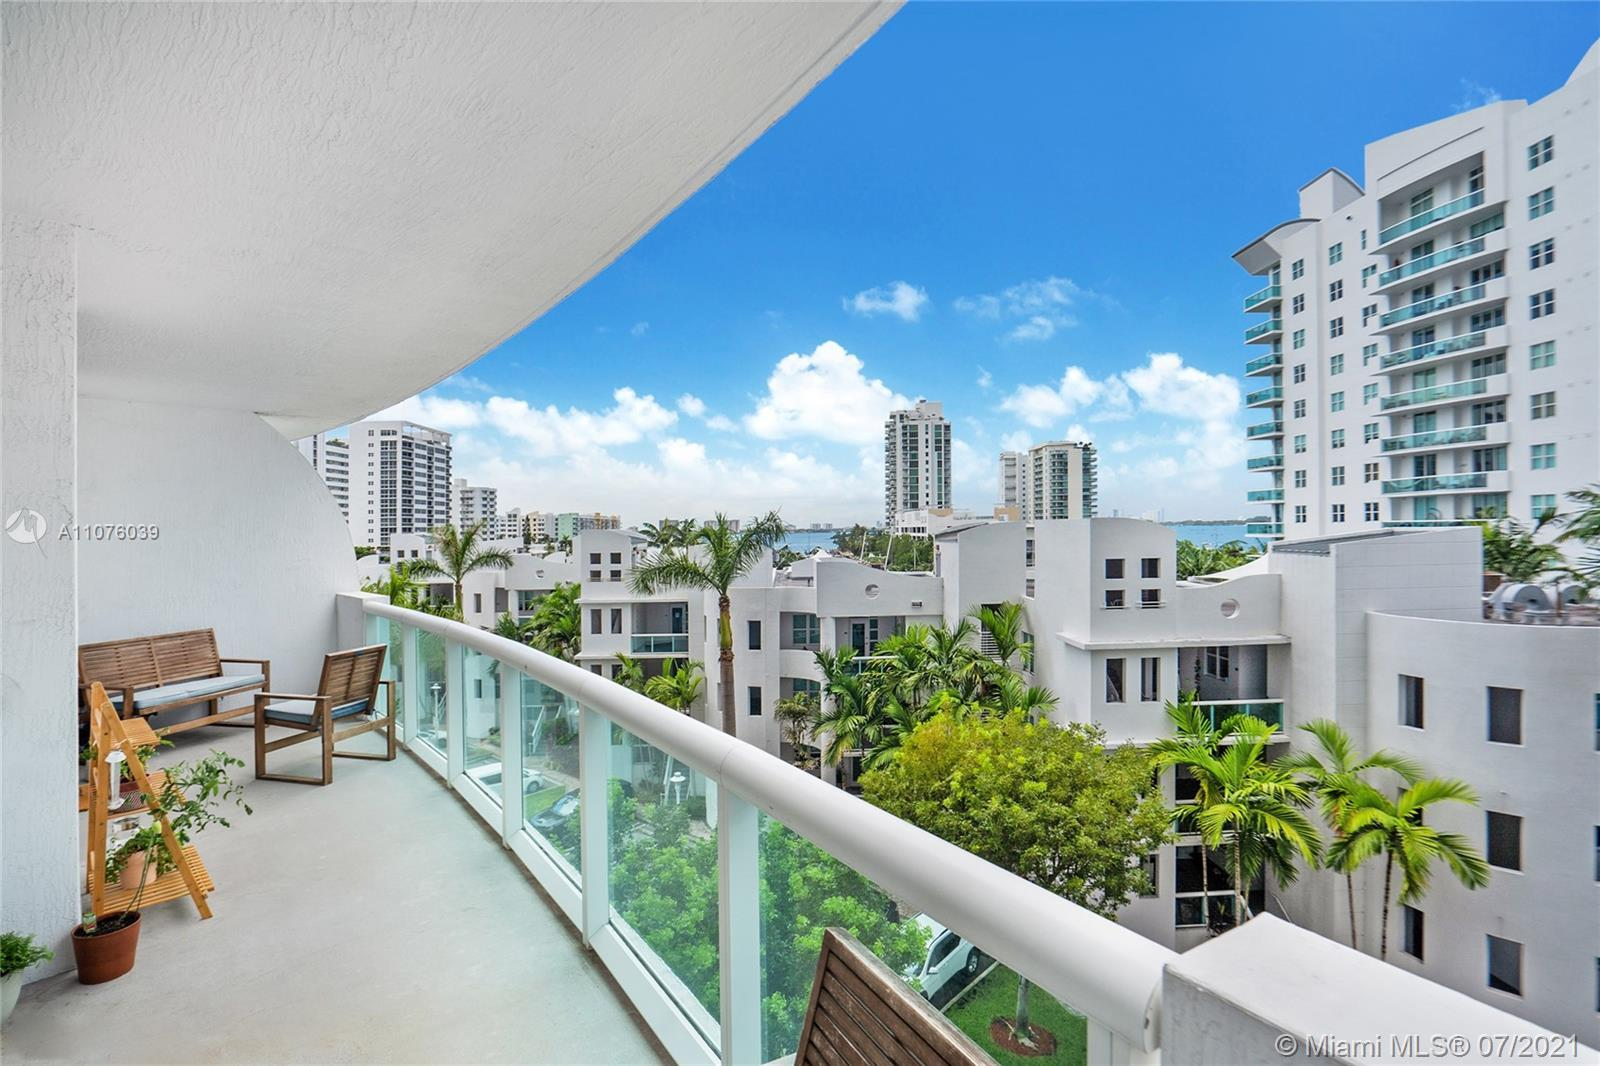 Beautiful 2 bedroom 2 baths apartment at the 360 Condo Building A in North Bay Village. The unit is